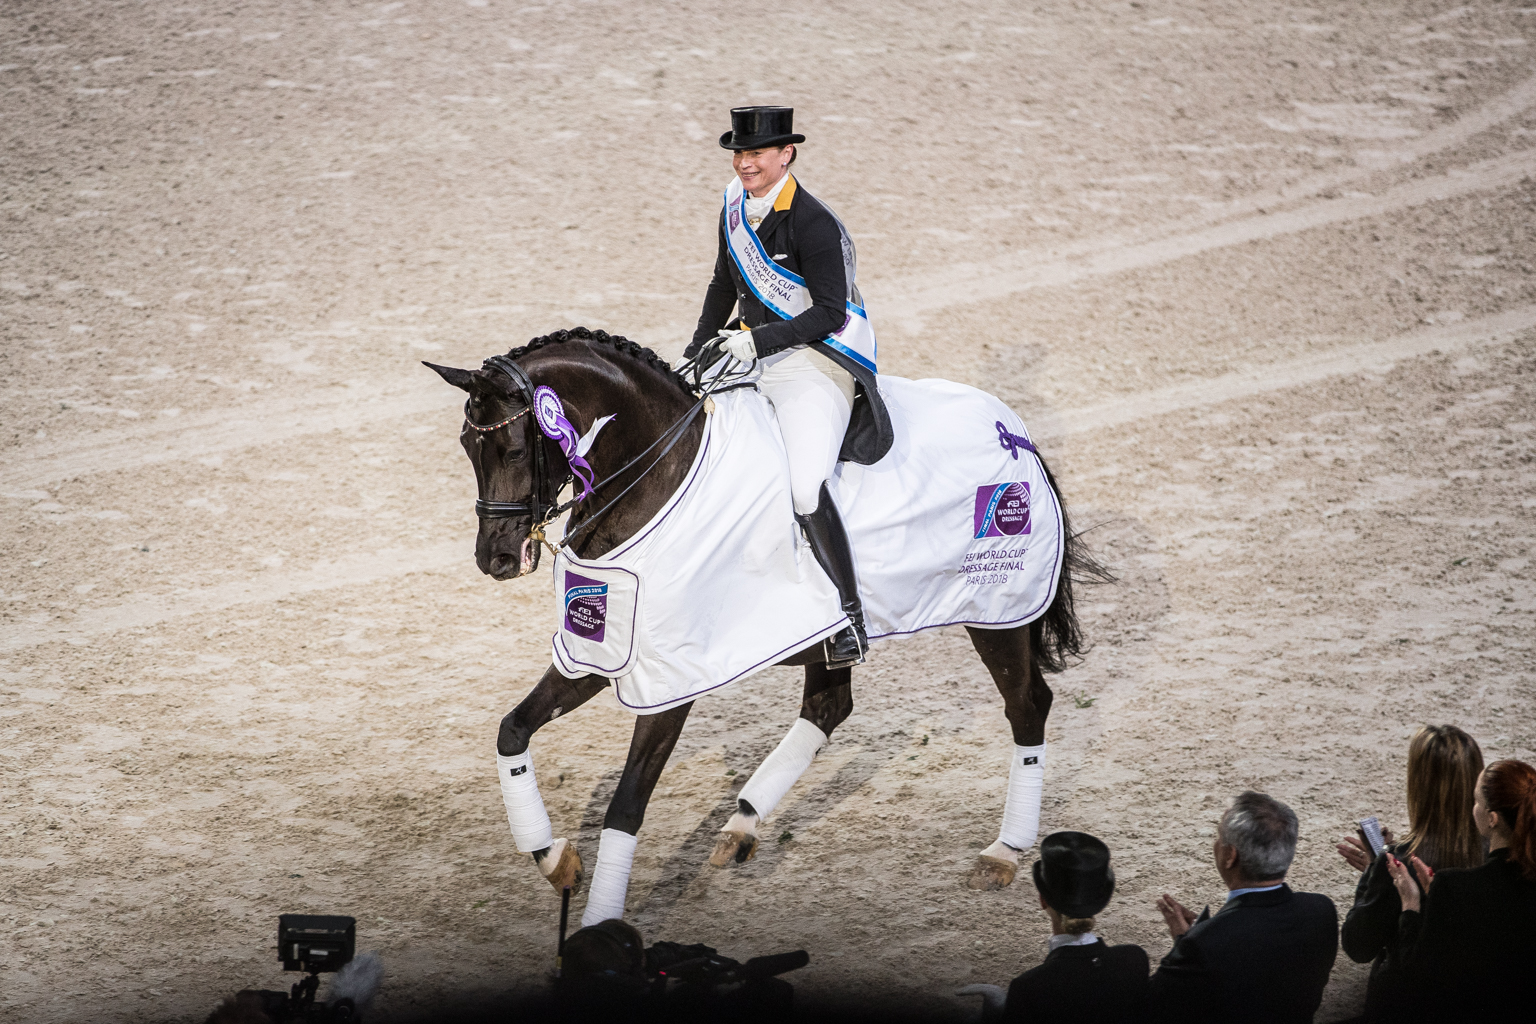 Fitness On Toast - FEI Dressage World Cup Finals Paris April 2018 France-9